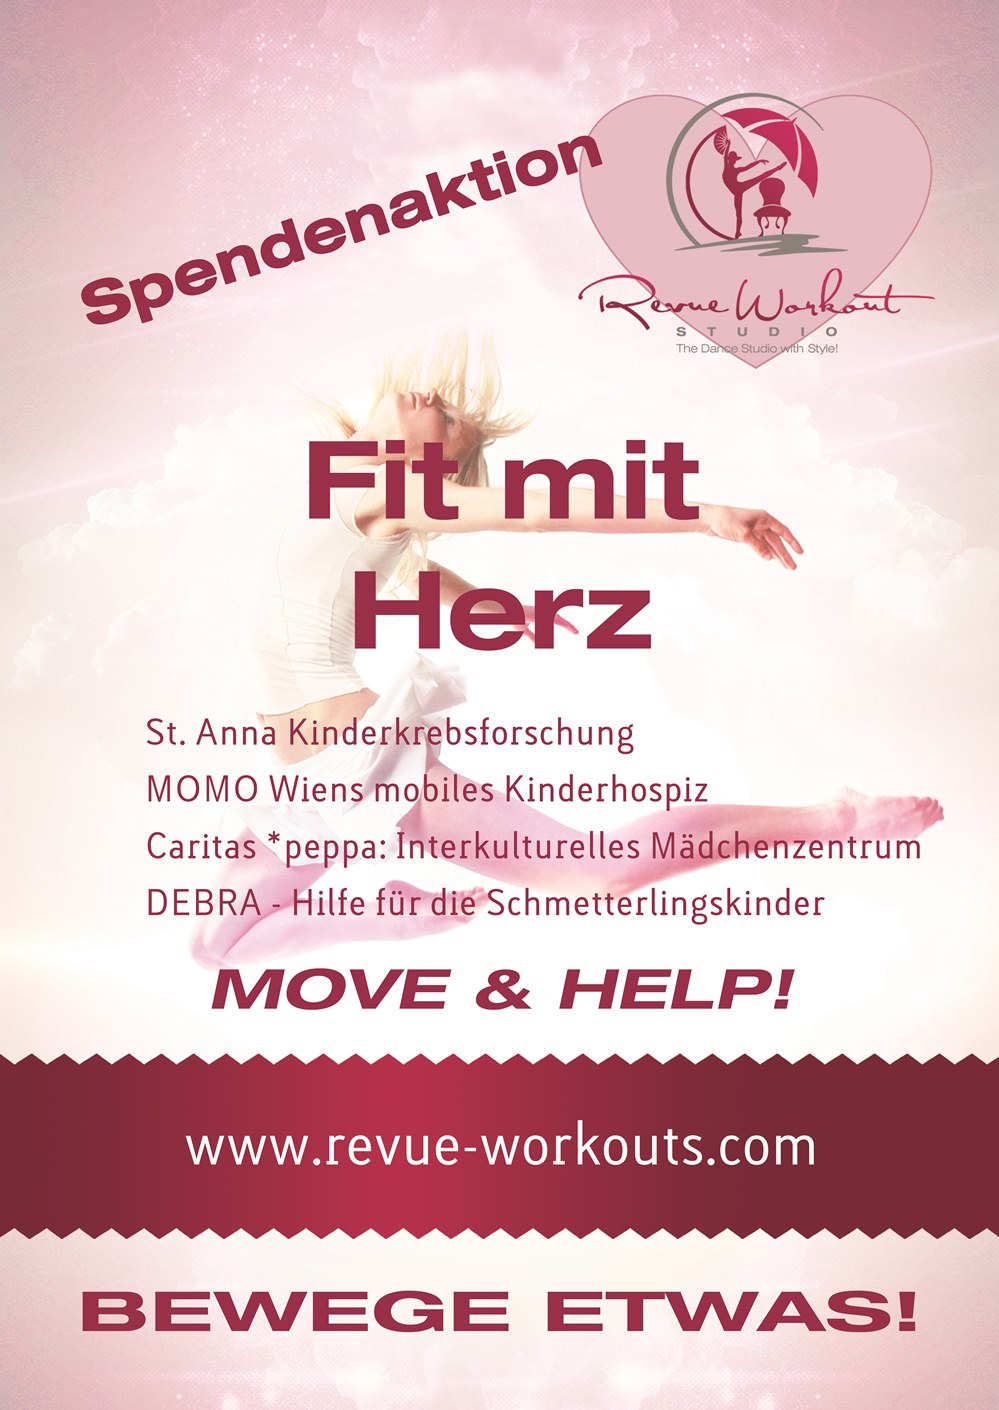 Spendenaktion-Flyer